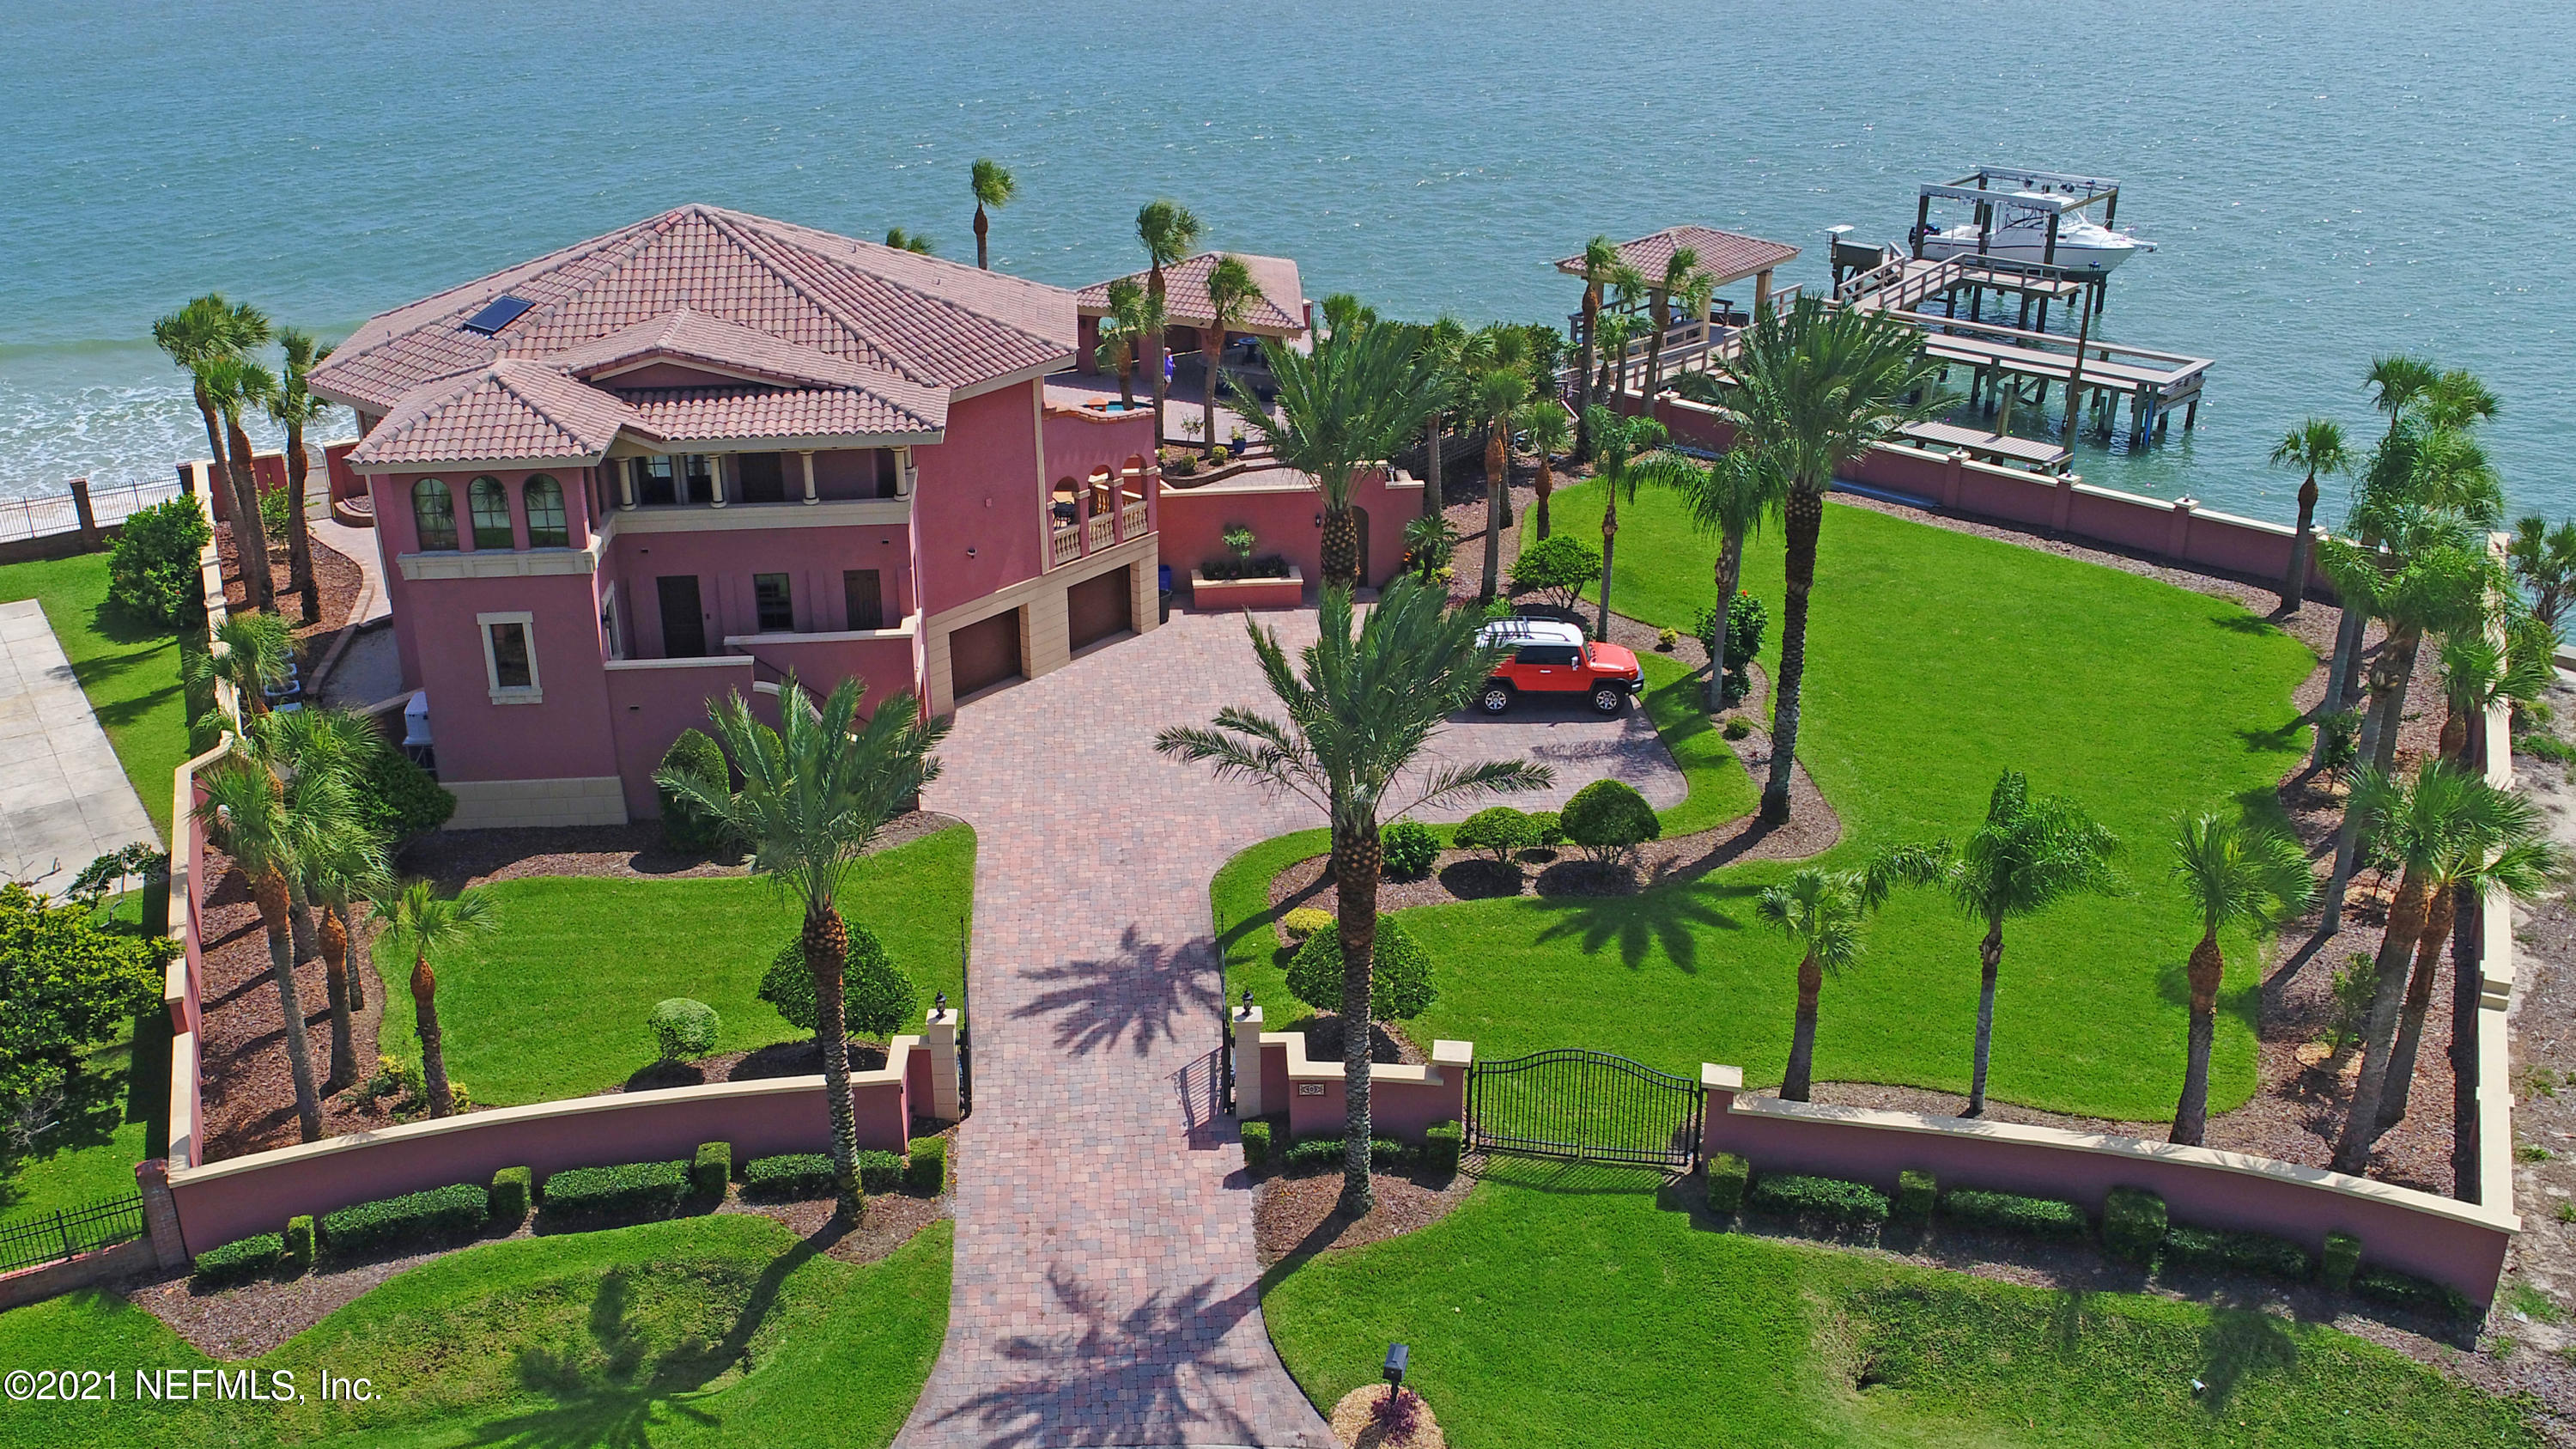 Porpoise Point Luxury Home Location is everything, and this home delivers! The ultimate in resort living with over 180 of breathtaking views of downtown St. Augustine, Castillo de San Marcos, St. Augustine Lighthouse, and the historic cross - all while situated on a rare double lot on the Intracoastal Waterway and the Atlantic Ocean! Water and views are everywhere in sight, and the beach sand, right in your backyard. Privacy and relaxation await as you relax in your custom pool and spa or hop on your boat for a luxurious cruise from your private deep-water dock with a 33,000lb boat lift. Simply put, there is no comparison of amenities and location in all of Northeast Florida. This luxury, gated, three-story Mediterranean style home showcases 5,224 sq. ft. of interior living space built exclusively around the views with an additional 2,374 sq. ft. comprised of balconies, terraces, and more. The large corner lot is a private compound secured by concrete walls, decorative steel gates, and a steel-concrete bulkhead surrounding the property. The generous living area has 17' ceilings, features a central stone fireplace flanked by windows and balconies everywhere, and easily connects to the open plan kitchen. There is a large formal dining room, study or art room loaded with sunshine from tall windows, and a private media room. Each of the upstairs bedrooms and study feature a generous size floor plan and private outdoor terrace. Take the central elevator to easily access anywhere in the home. On the ground floor, stop off at the large climate-controlled wine cellar on your way to the entertaining kitchen, outdoor swimming pool, multiple gazebos, and large outdoor bar. This home has all the amenities and is truly an entertainer's paradise!